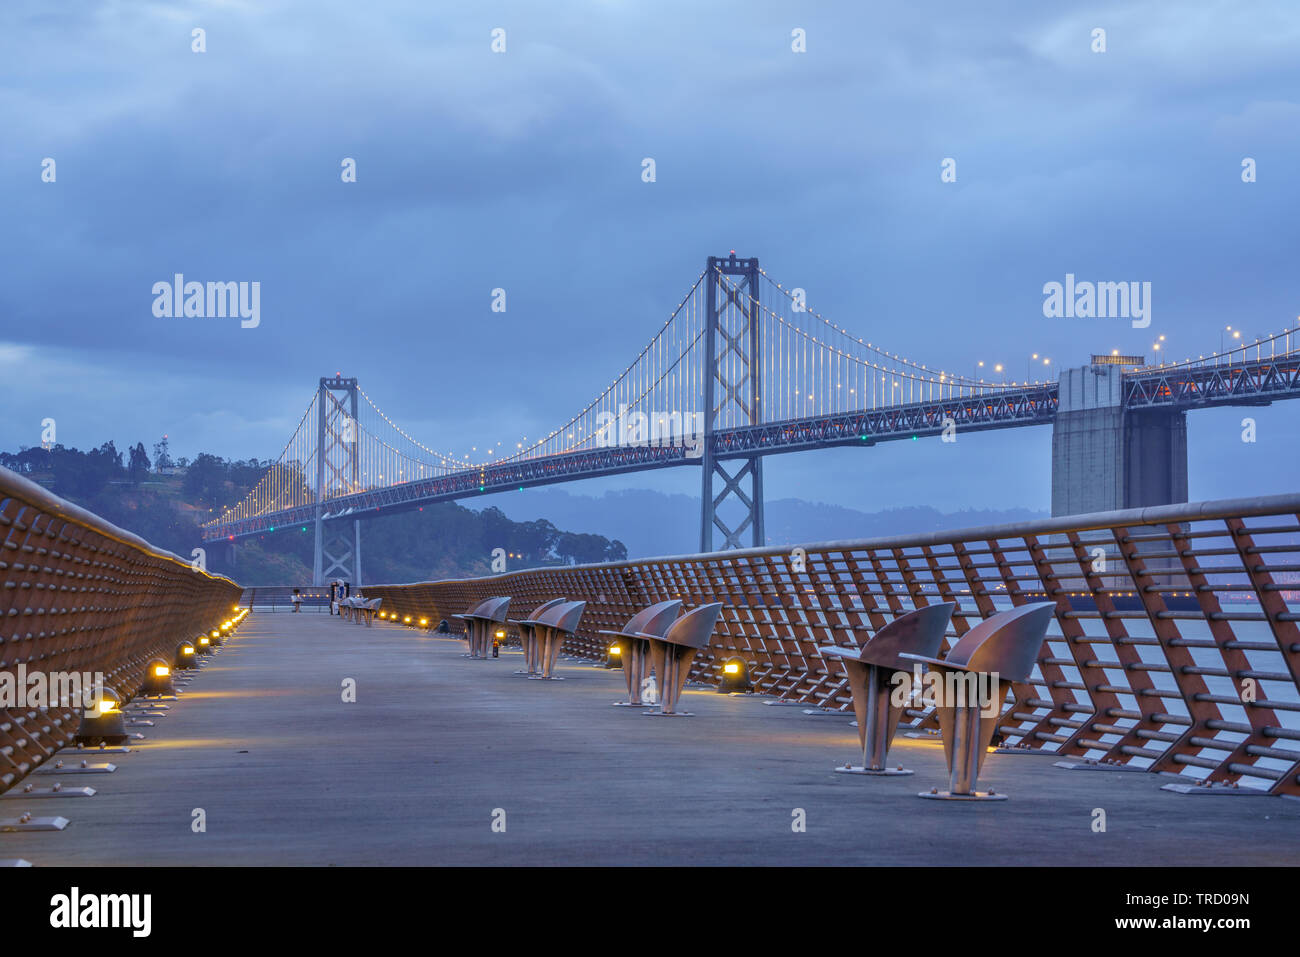 Bay Bridge is located in California, US, and connects San Francisco and Oakland. Its construction finished in 1936 and is one of the main landmarks of Stock Photo